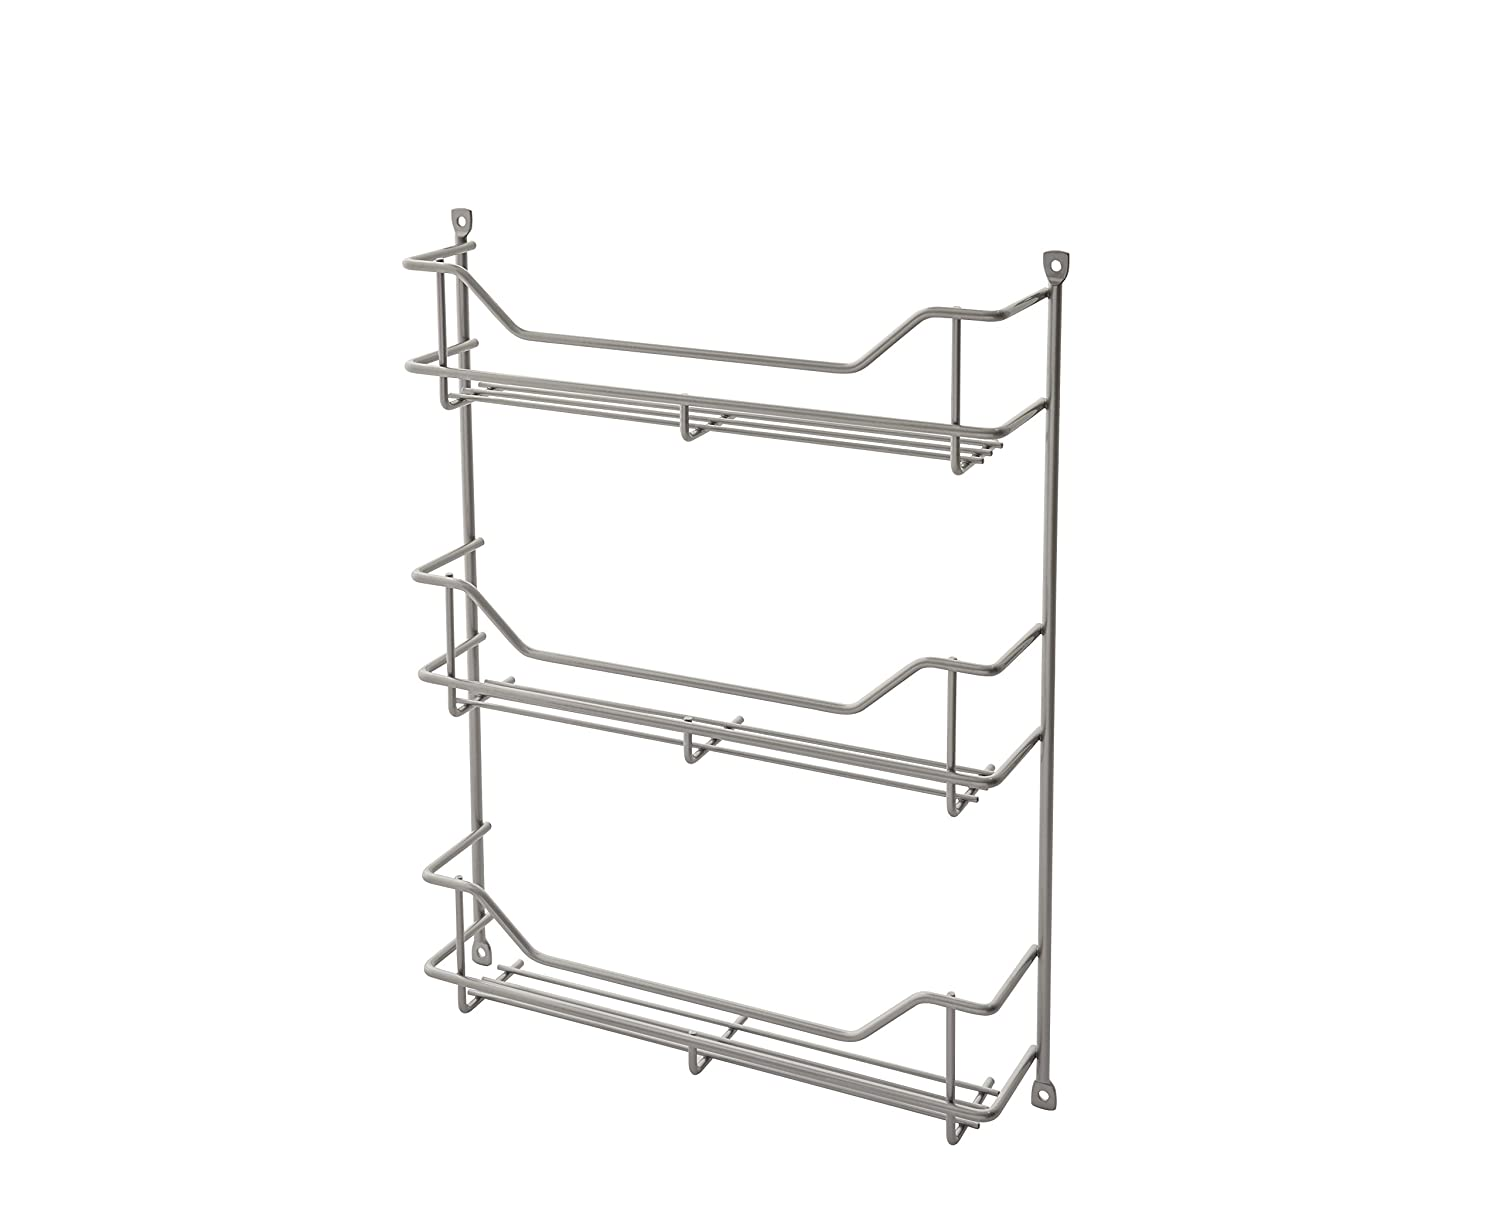 ClosetMaid 32103 Premium Three Shelf Spice Rack